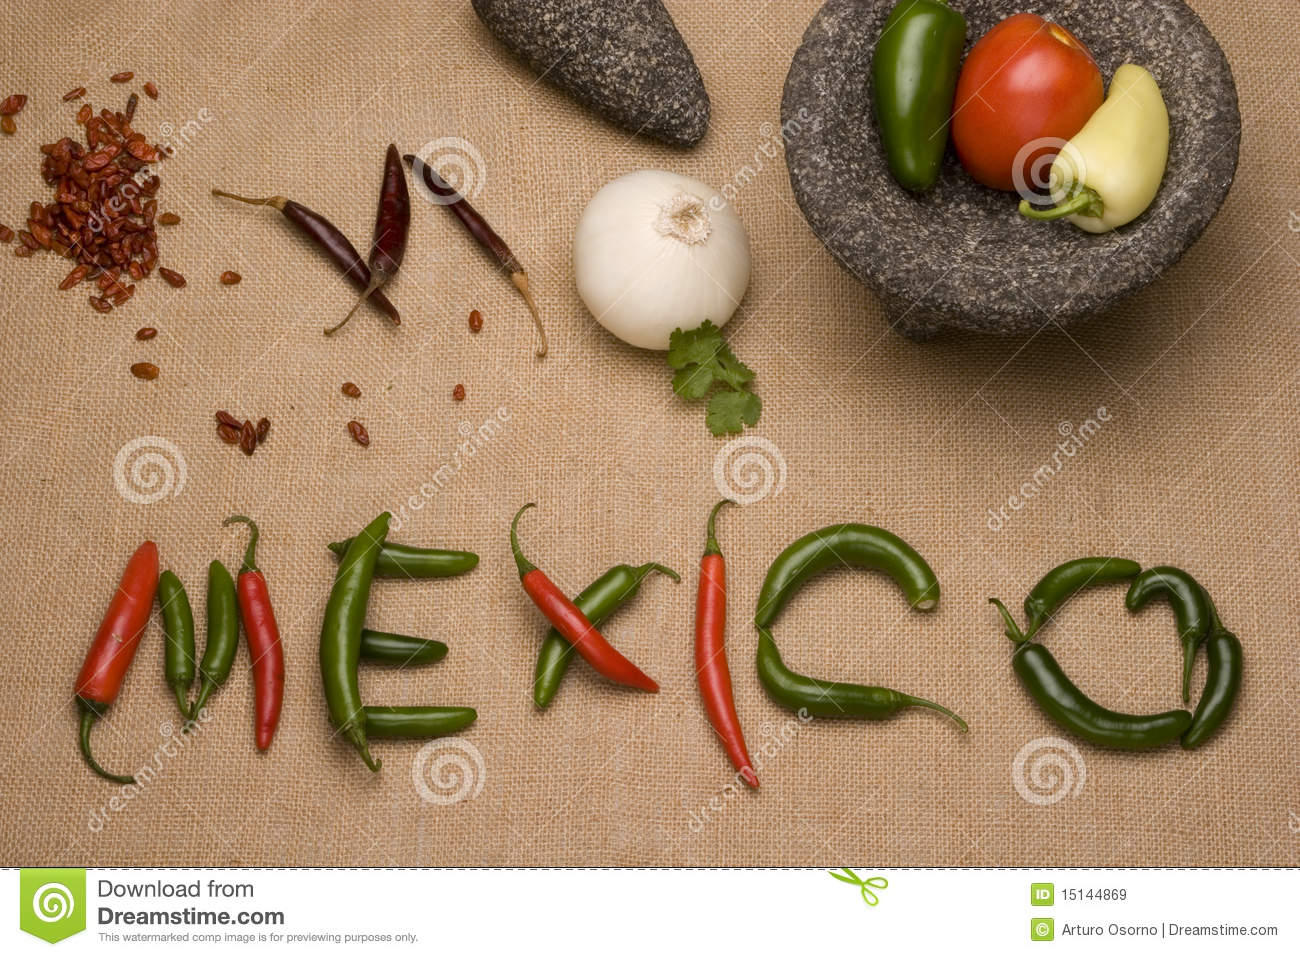 Mexico, Chili y molcajete